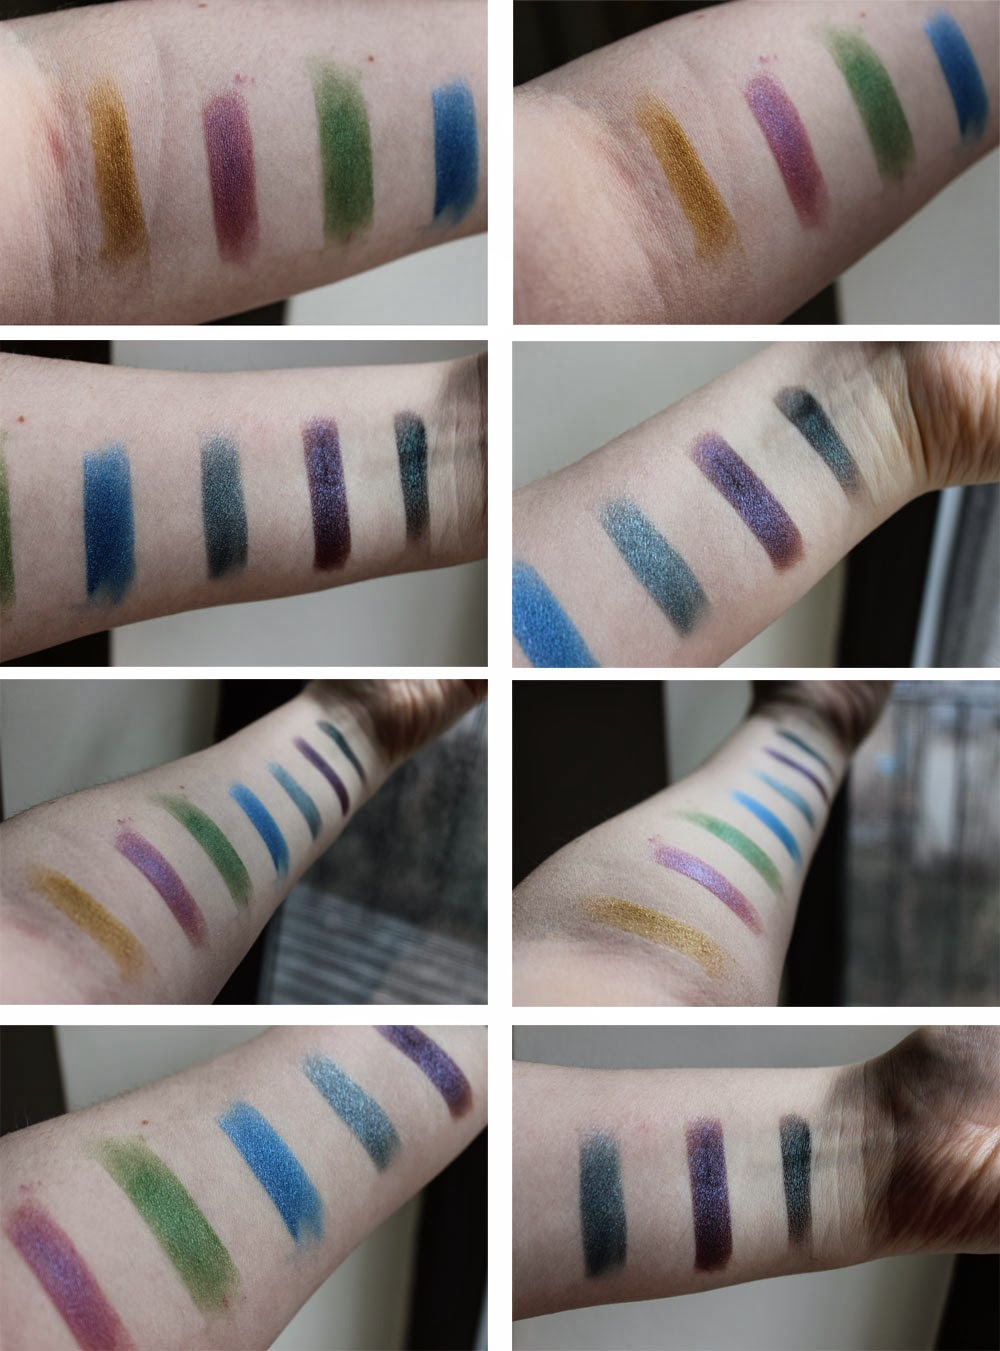 Notoriously Morbid A Dark Christmas Dream swatches